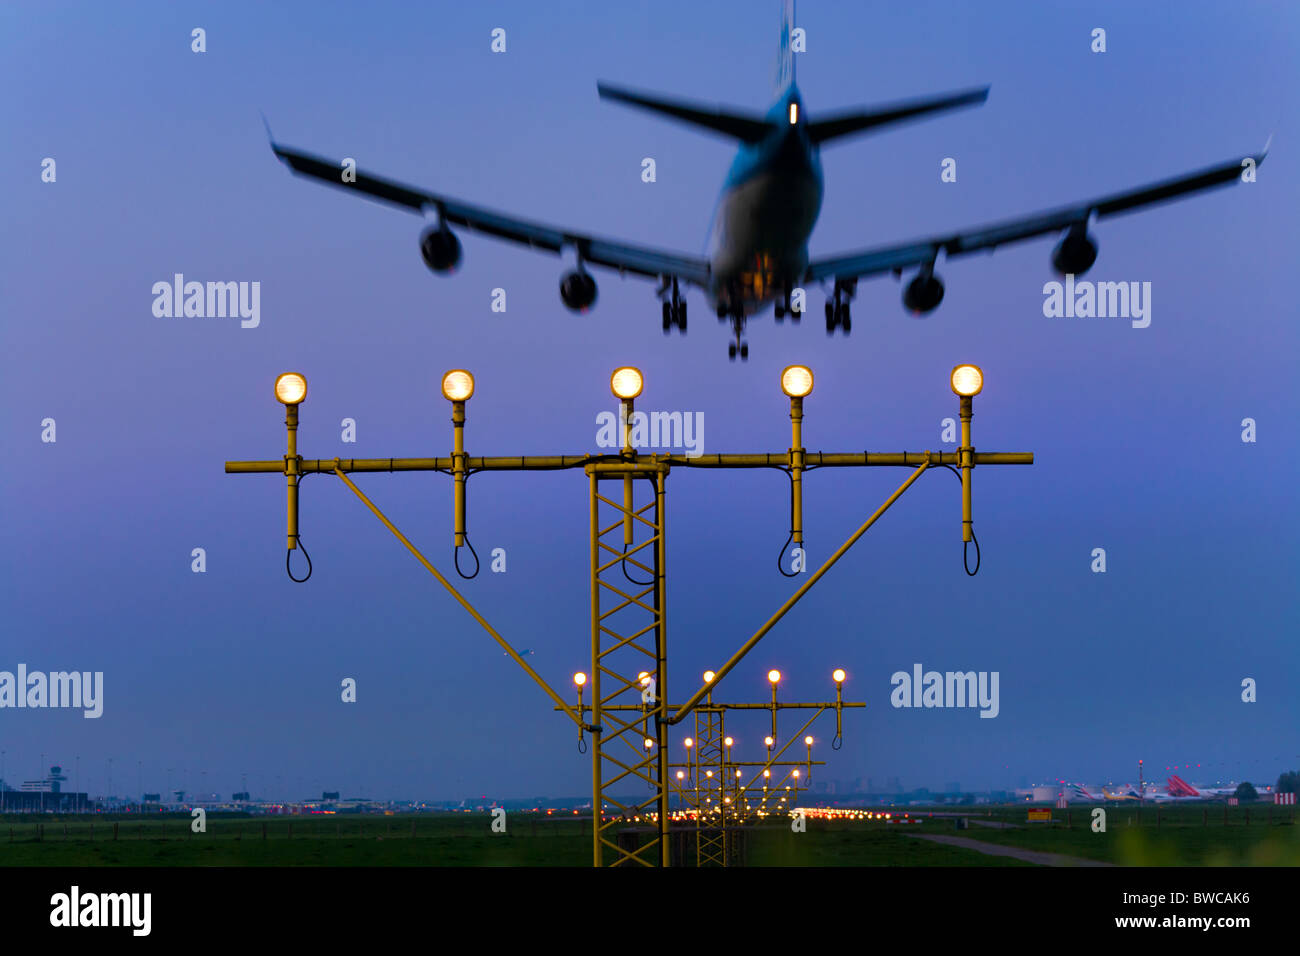 KLM airplane plane approaching, landing, on the Kaagbaan runway of Amsterdam Schiphol Airport at dusk. - Stock Image